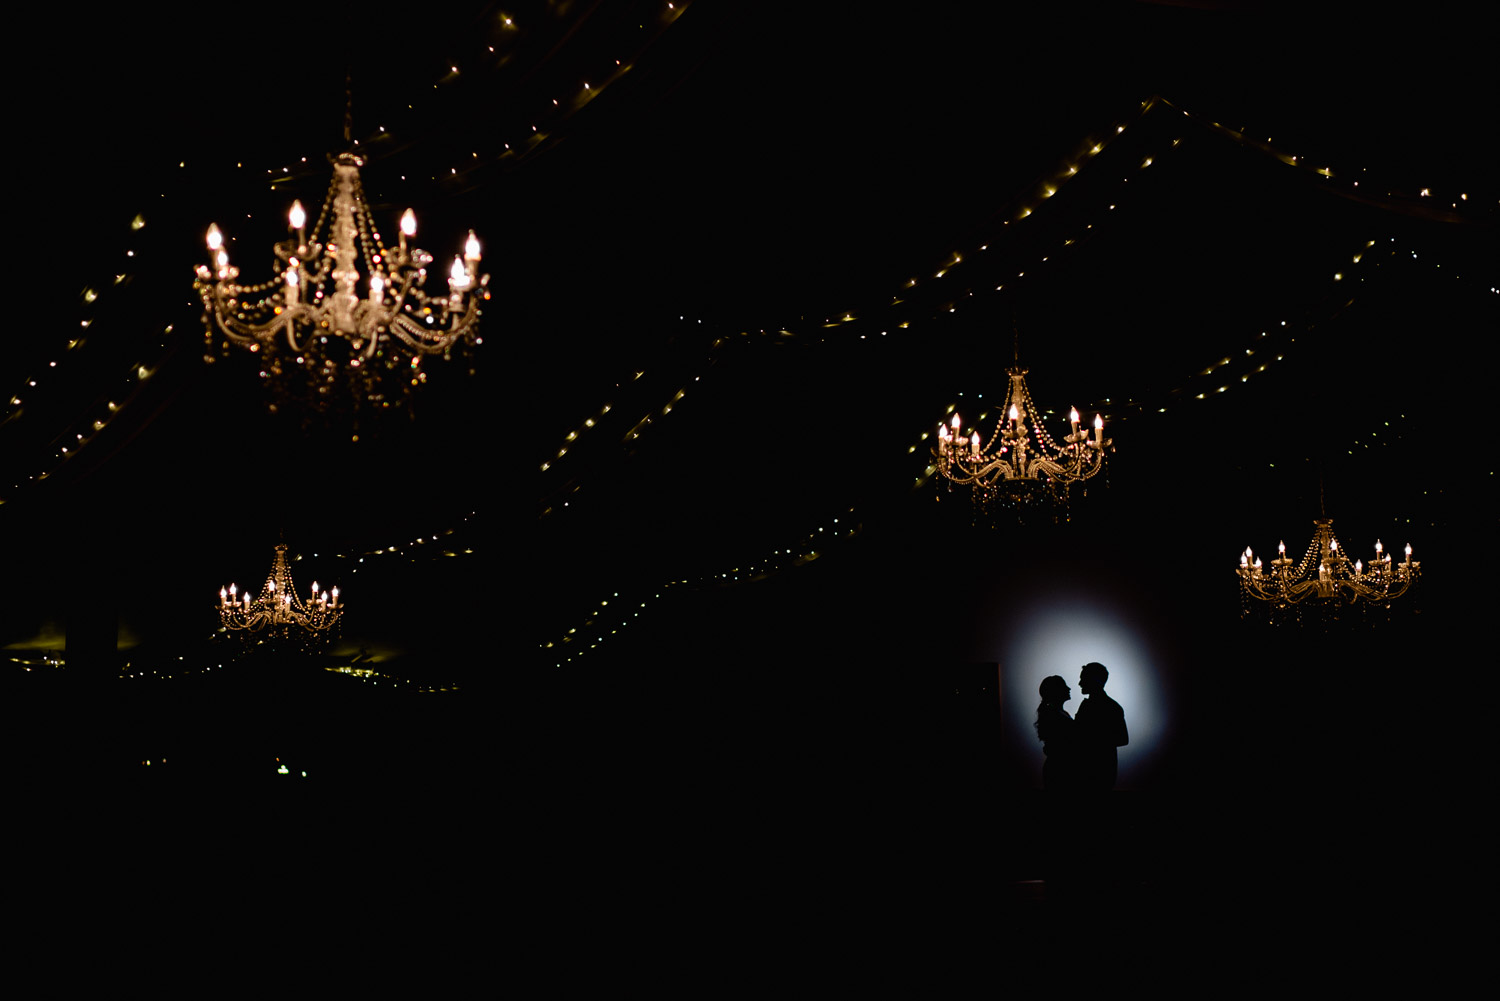 couple dancing under lights at night solitude mountain resort fall wedding